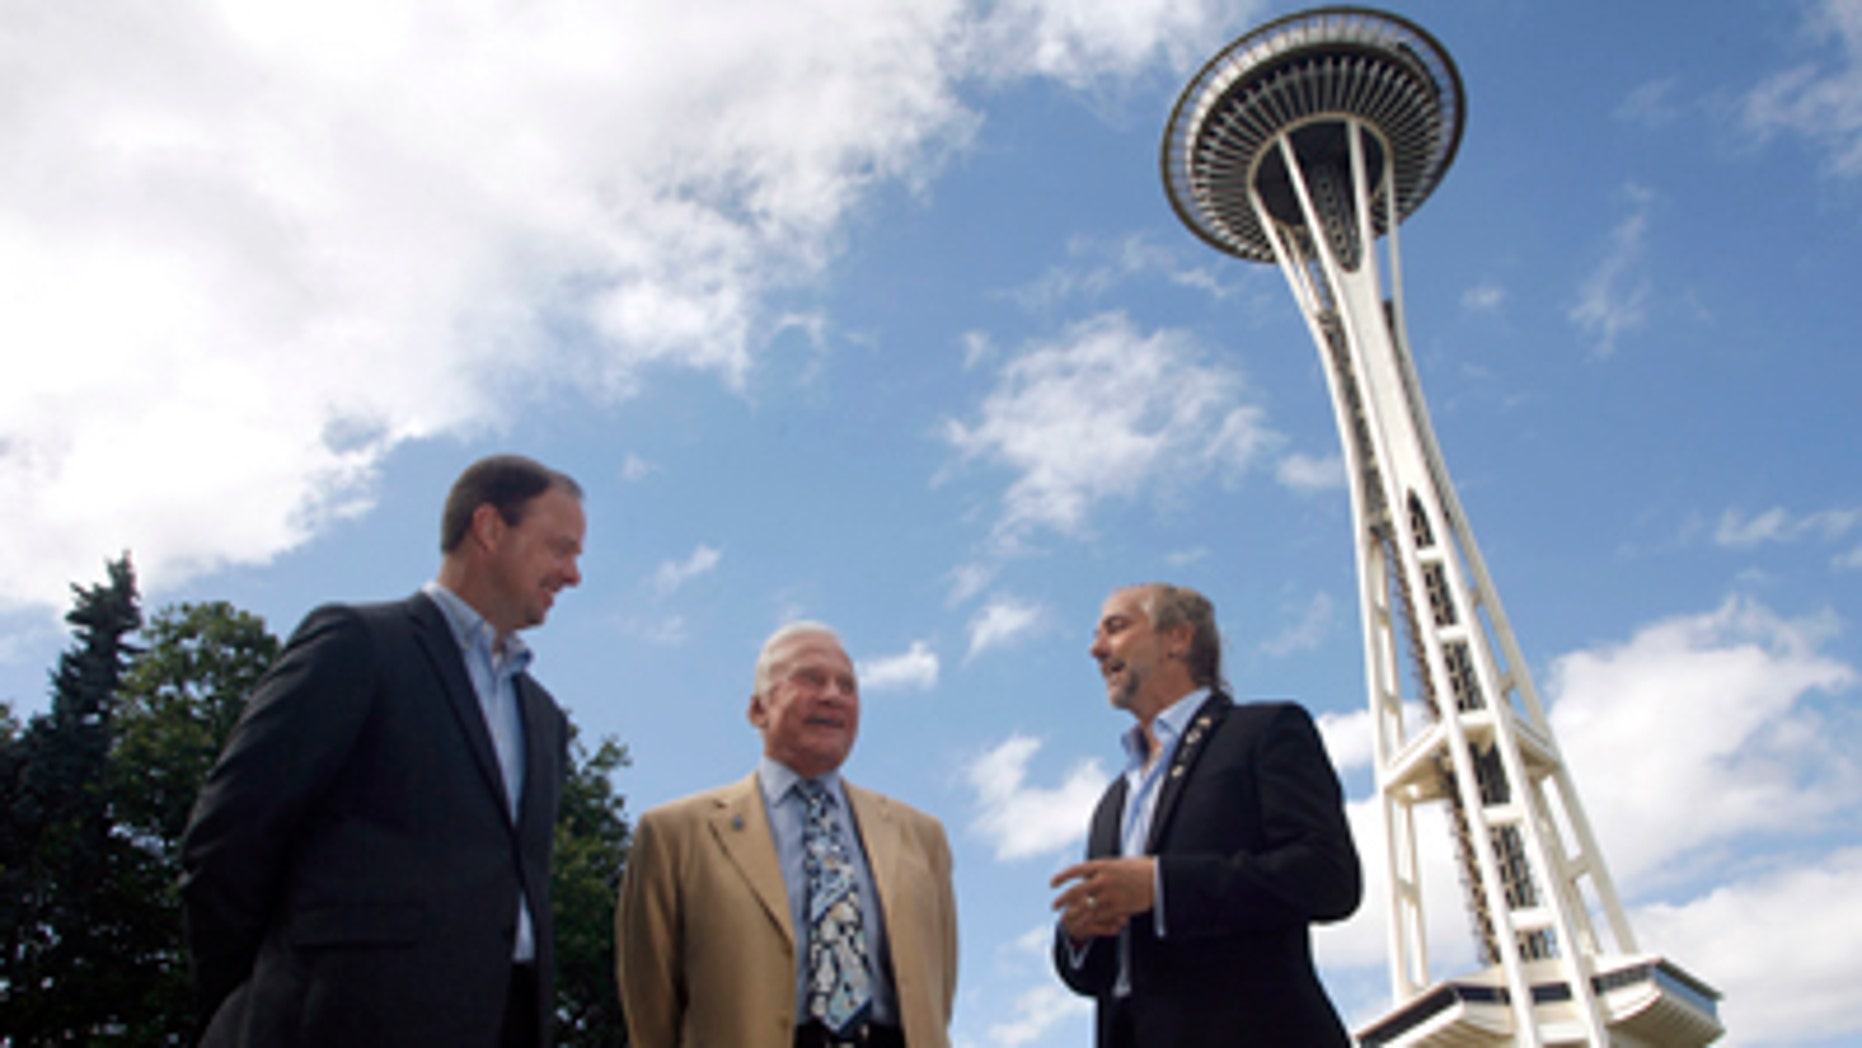 Buzz Aldrin, former astronaut, center, and Richard Garriott, first second-generation space traveler, right, talk about space exploration outside the Space Needle on Sunday, July 31, 2011, in Seattle as Ron Sevart, CEO of the Space Needle, left, listens in. Aldrin and Garriott were at the Space Needle to help promote a contest sponsored by the Needle to celebrate its 50th anniversary by sending a member of the general public into space.     (AP Photo/Joe Nicholson)